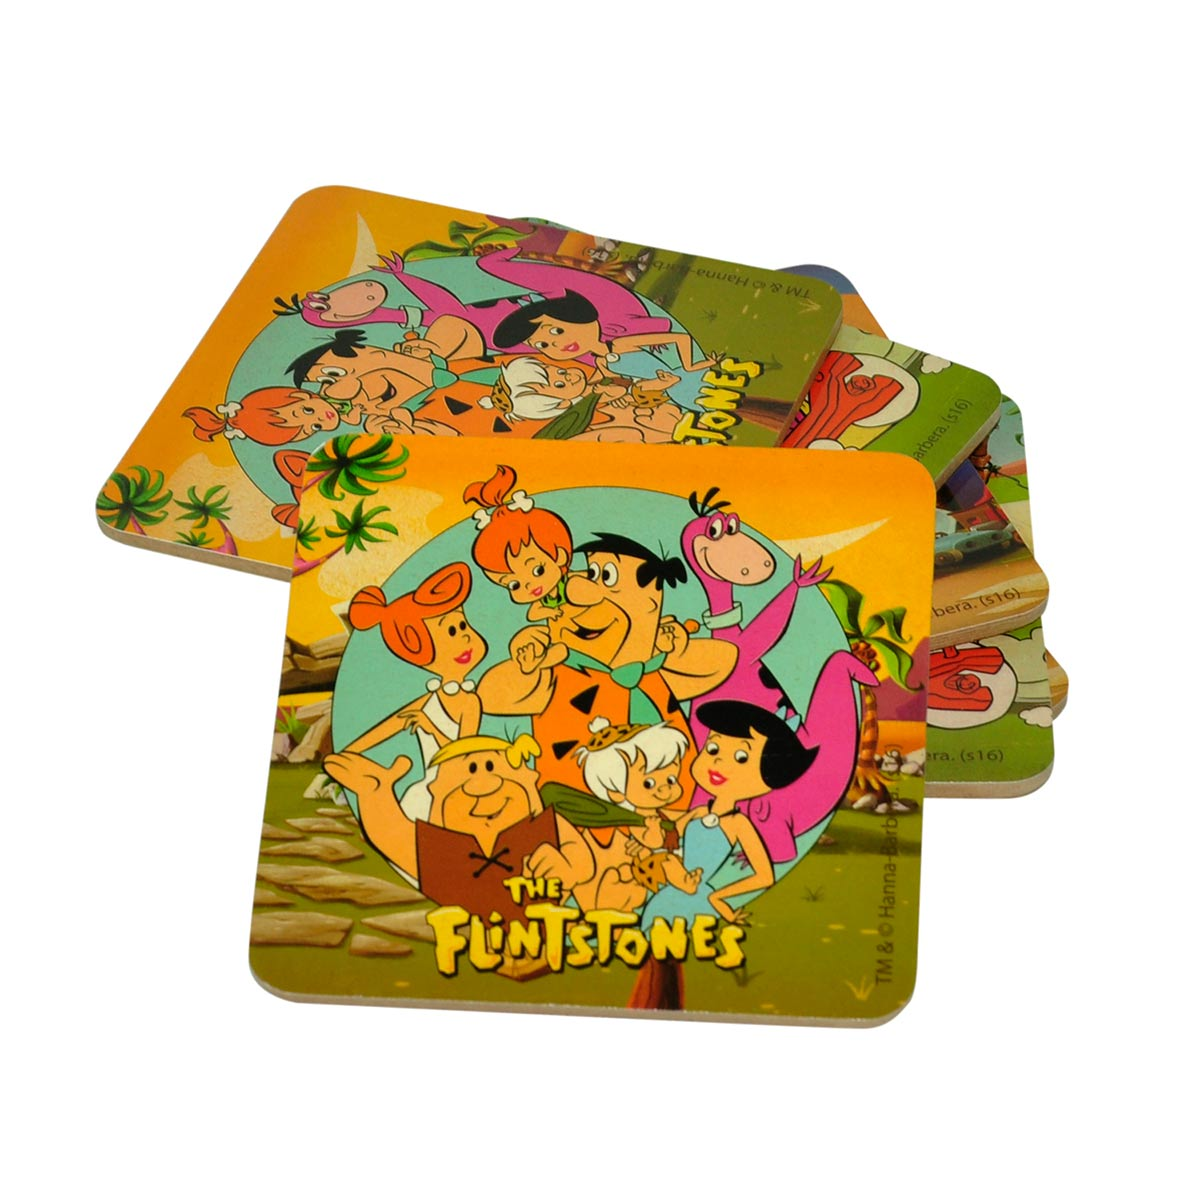 Set com 6 Porta-Copos HB Os Flintstones Personagens